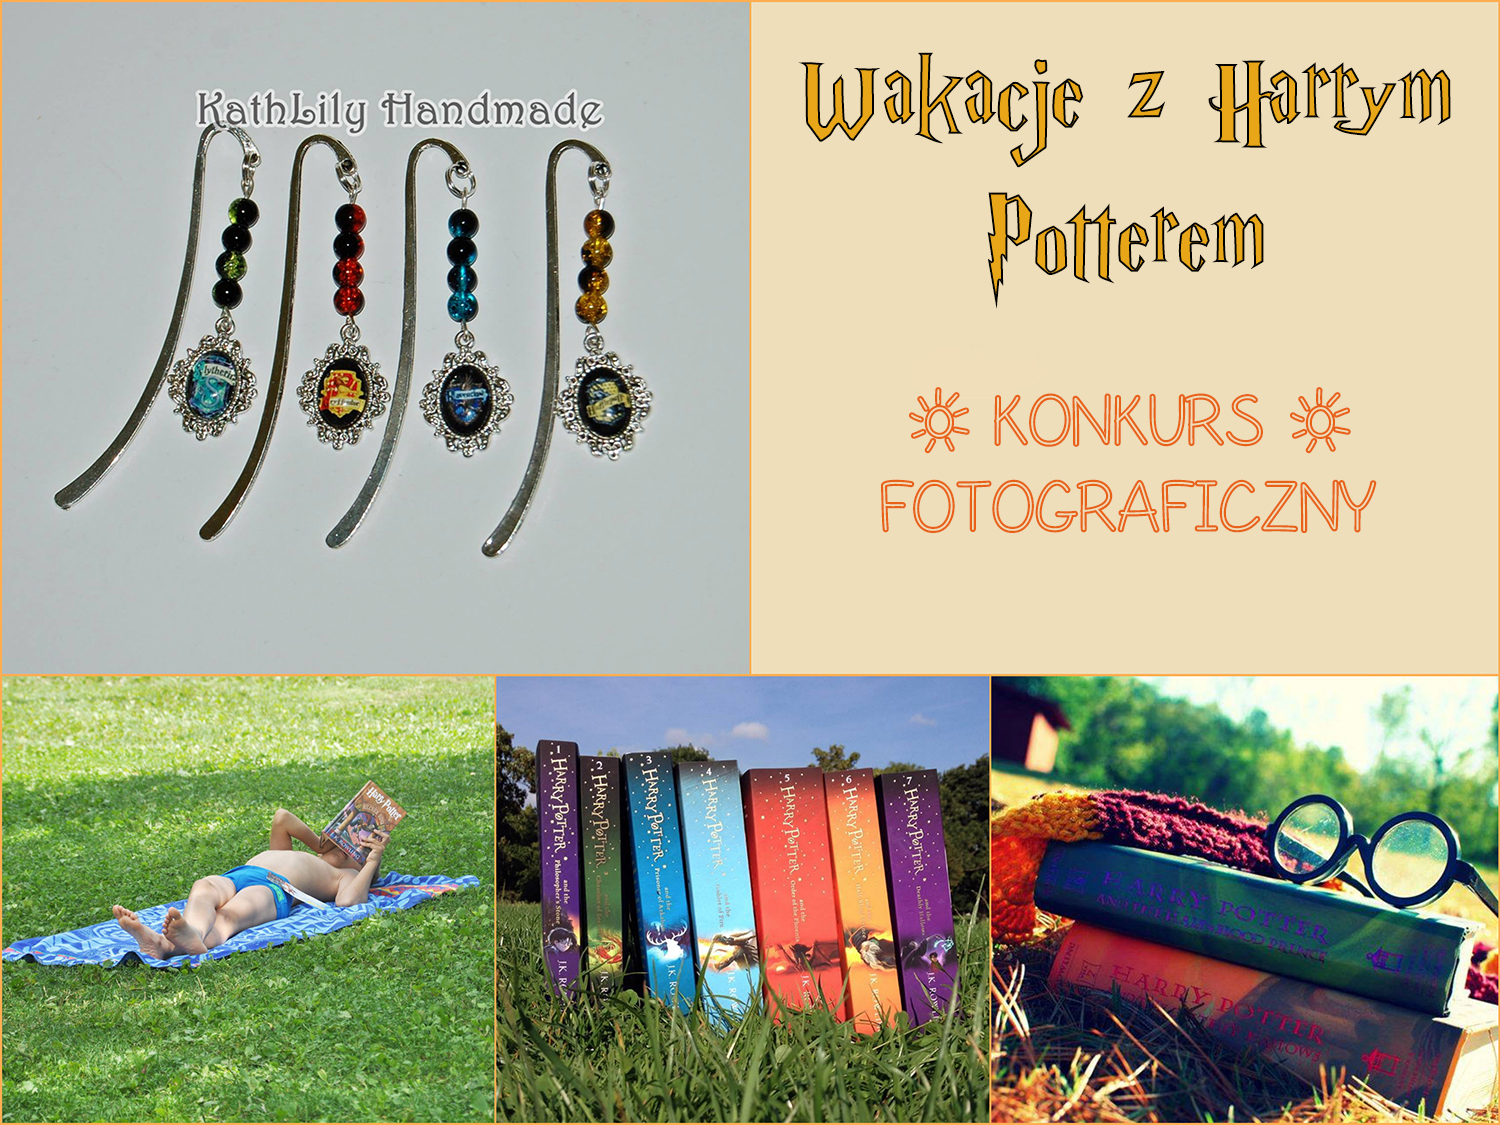 http://www.harry-potter.net.pl/images/konkurs_wakacjeharry.jpg